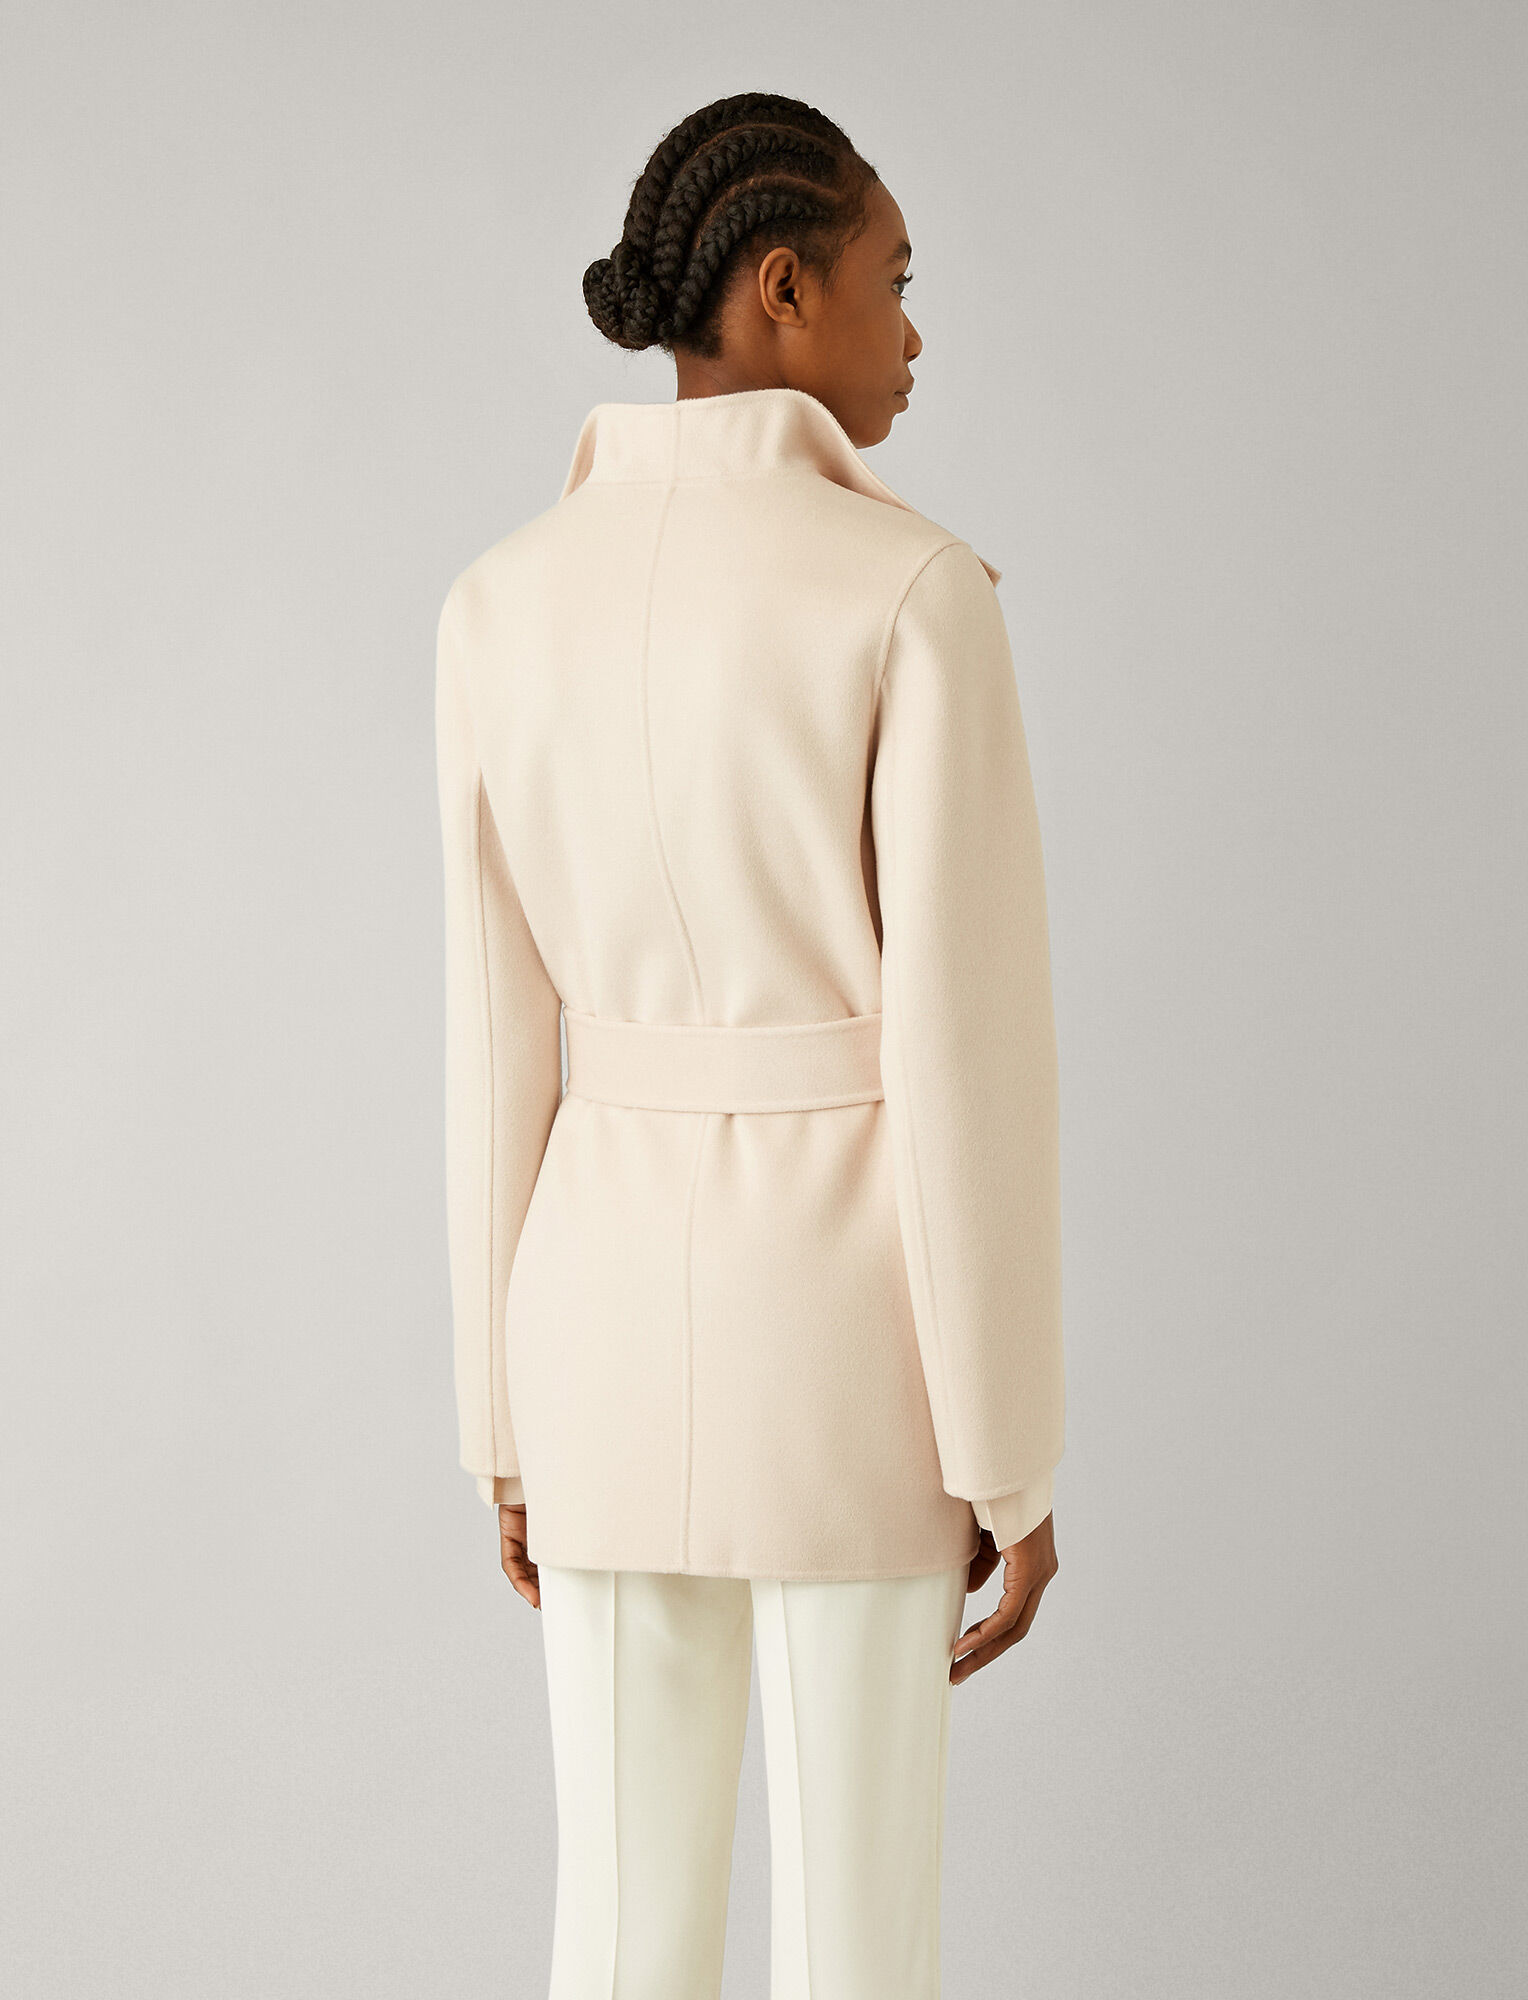 Joseph, Lima Short Double Face Cashmere Coat, in ROSEWATER